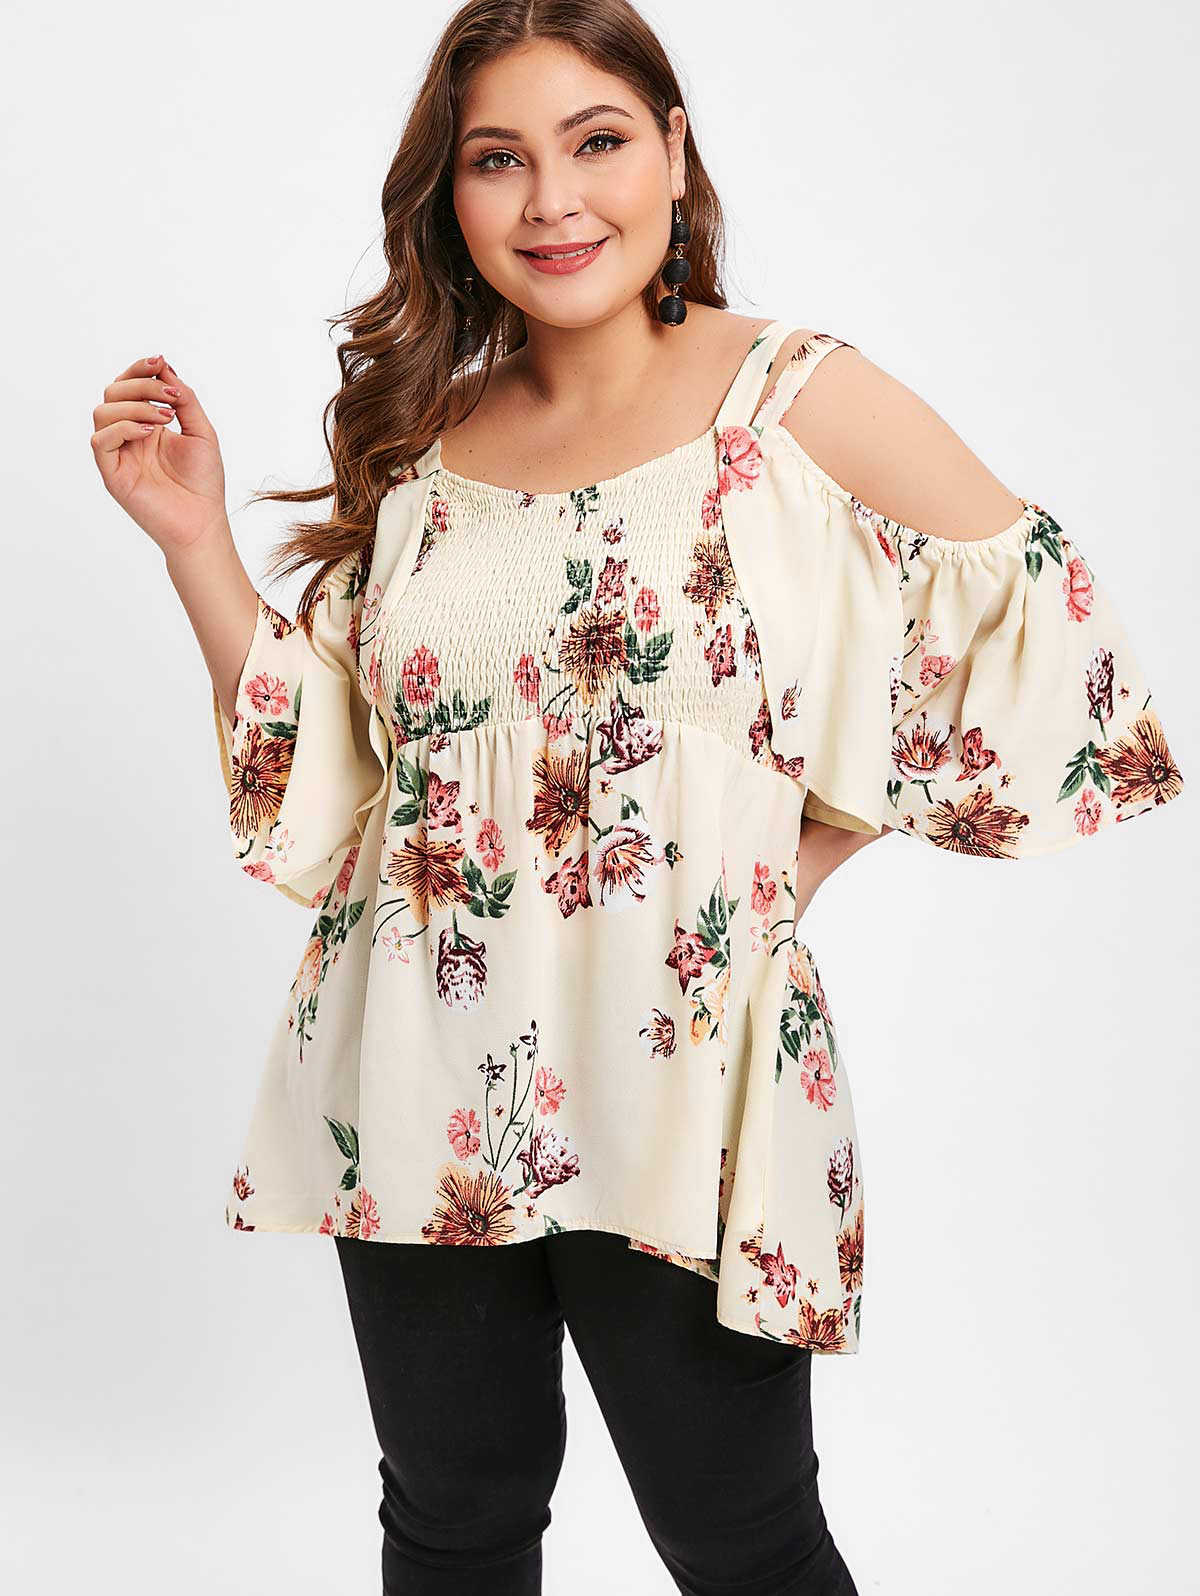 3f51a7612c22a Wipalo Plus Size 5XL Floral Print Cold Shoulder Smocked Blouse 3 4 Length  Sleeve High